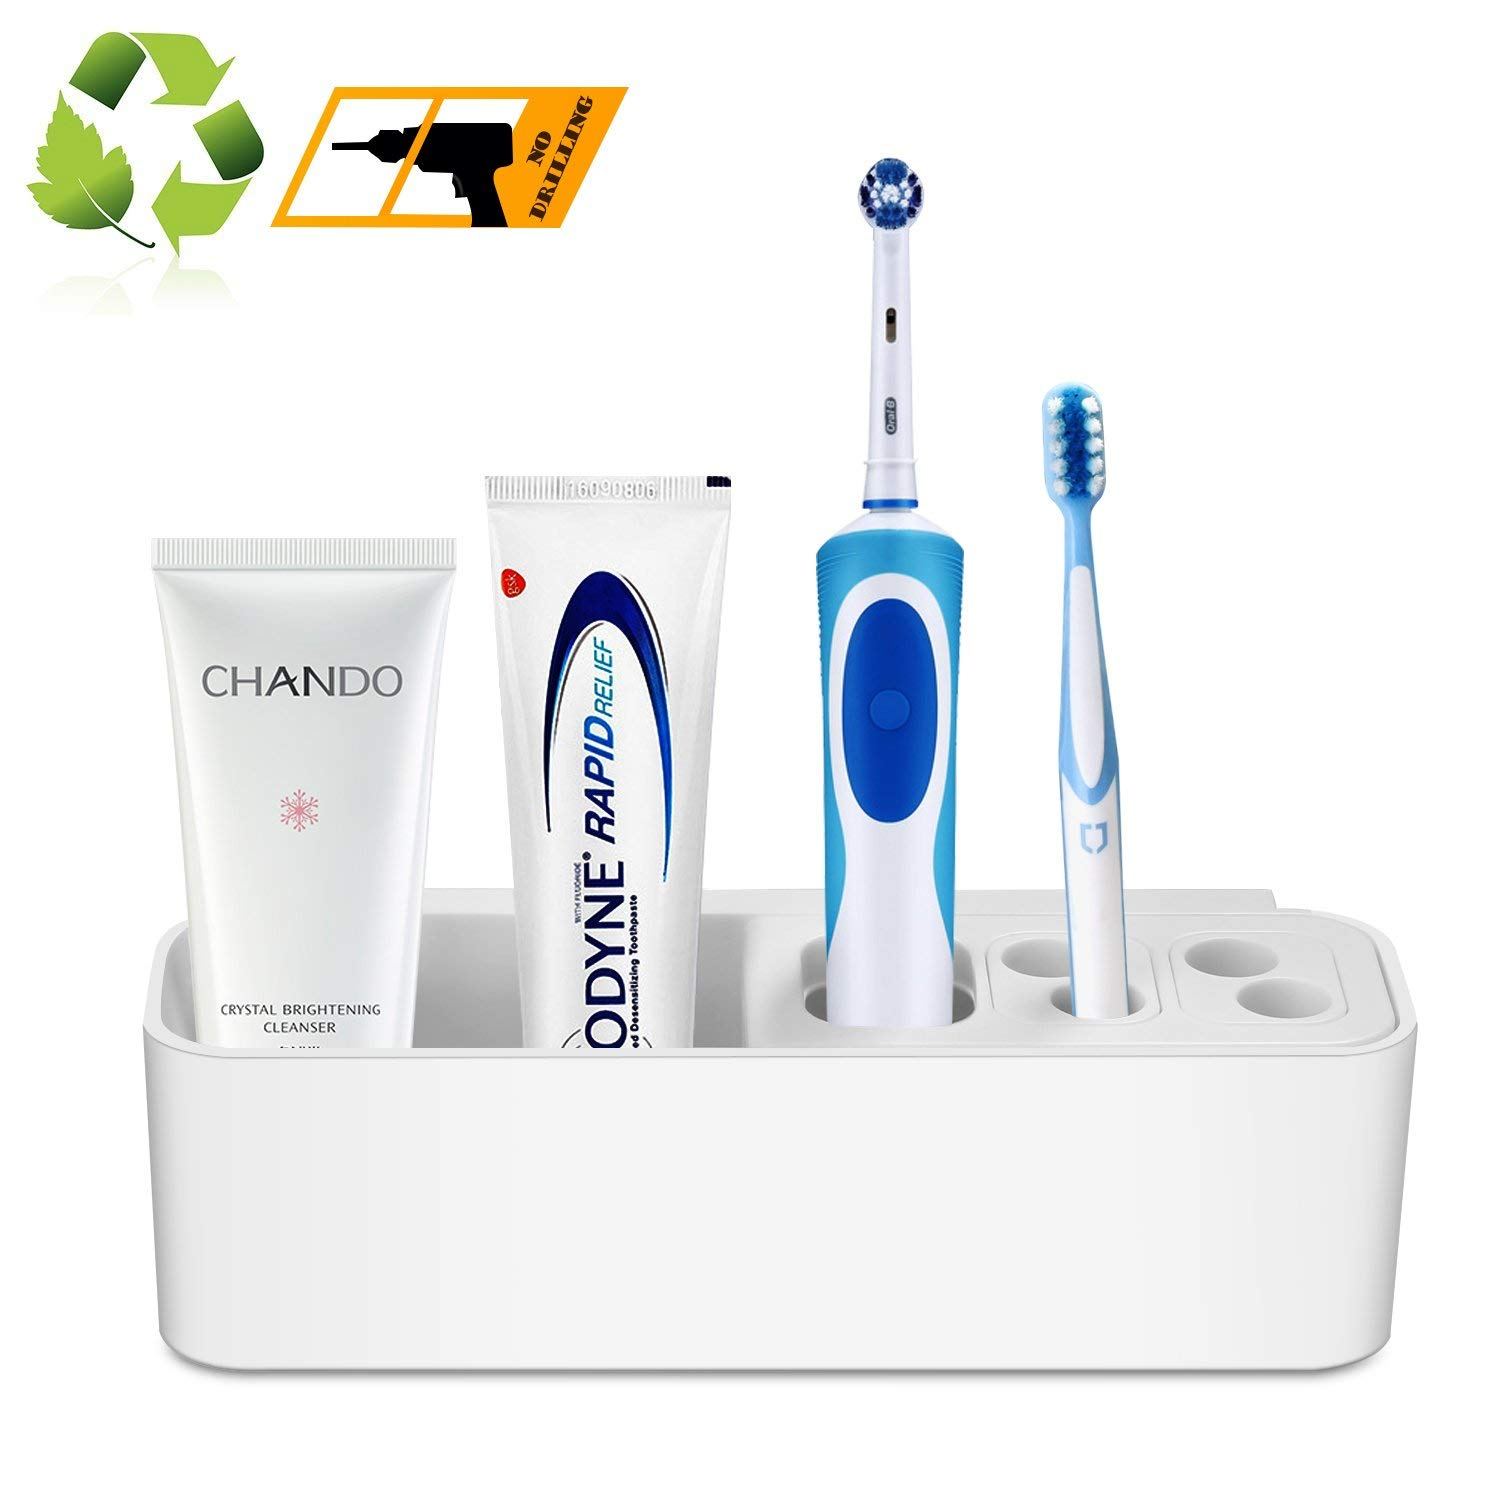 hblife Toothbrush and Toothpaste Holder, Wall Mounted Electric Toothbrush Caddy with Srong Suction for Bathroom Detachable (White)